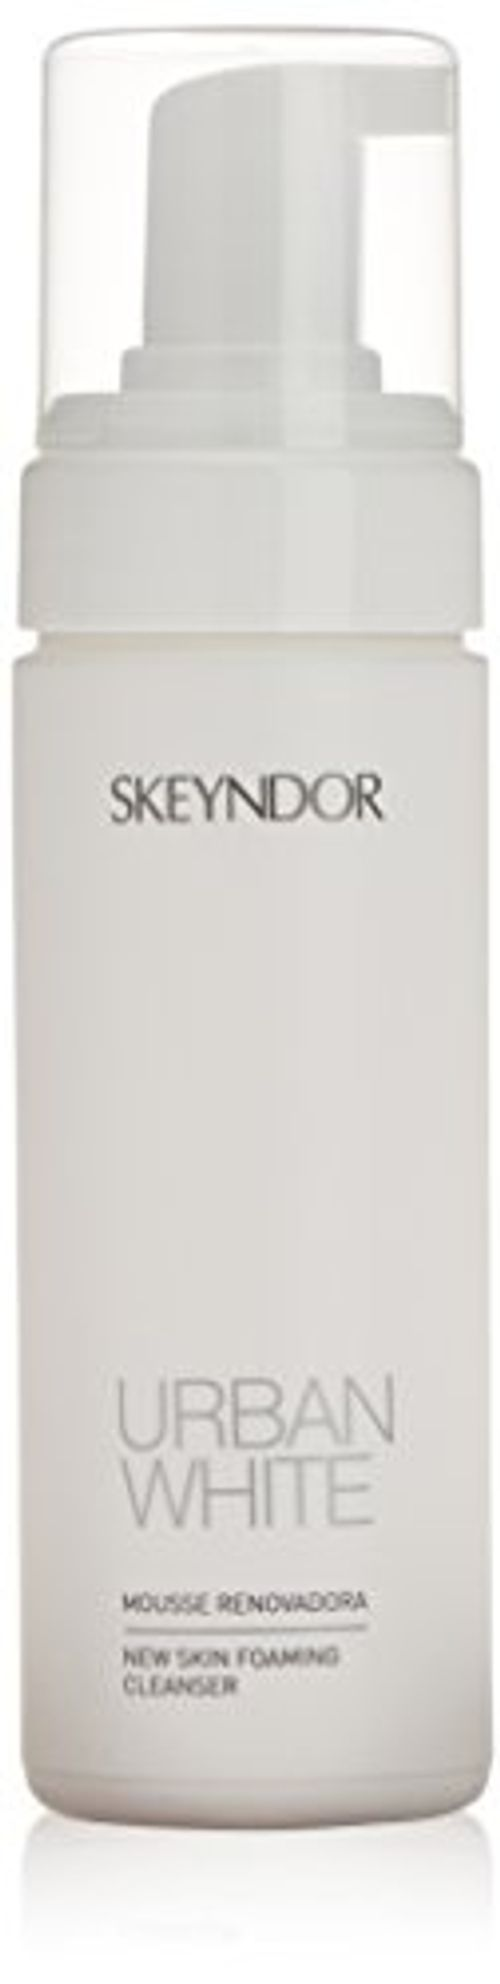 photo Wallpaper of Skeyndor-SKEYNDOR URBAN WHITE Foaming Cleanser 150 Ml-